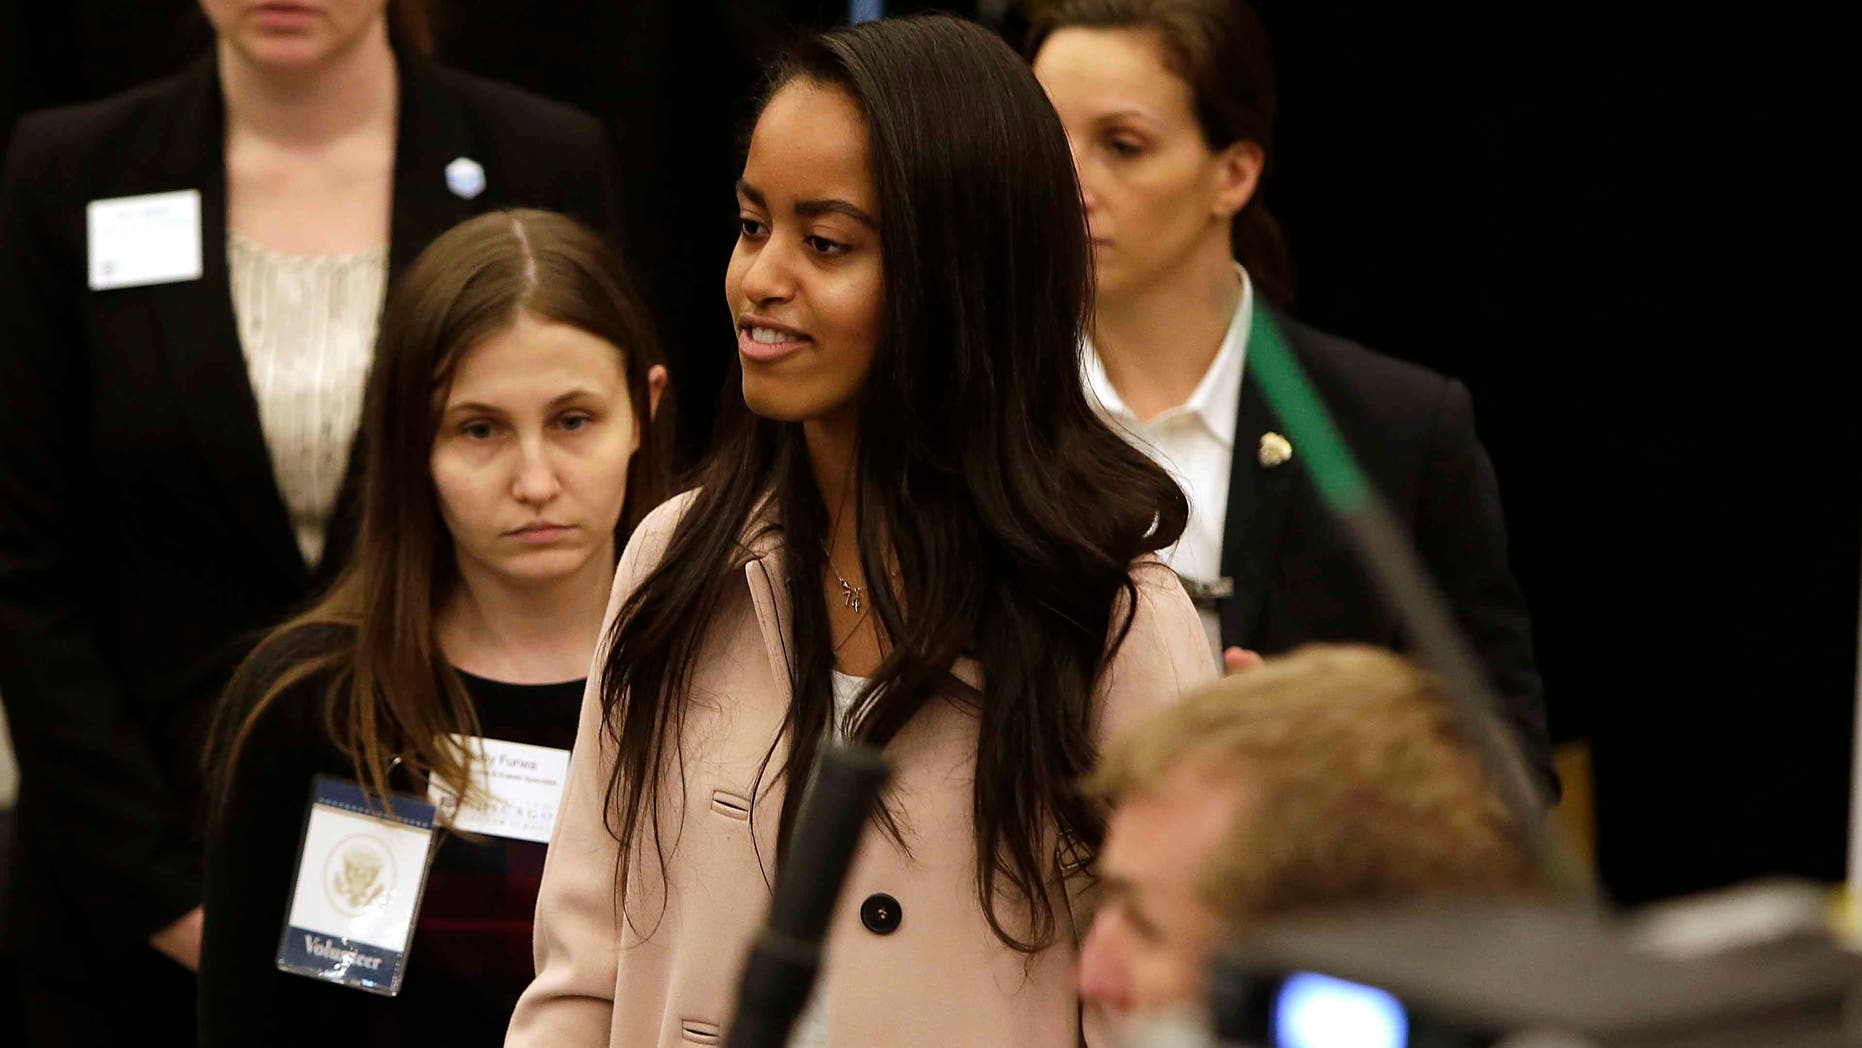 Malia Obama at the University of Chicago Law School on April 7, 2016 in Chicago, Illinois.